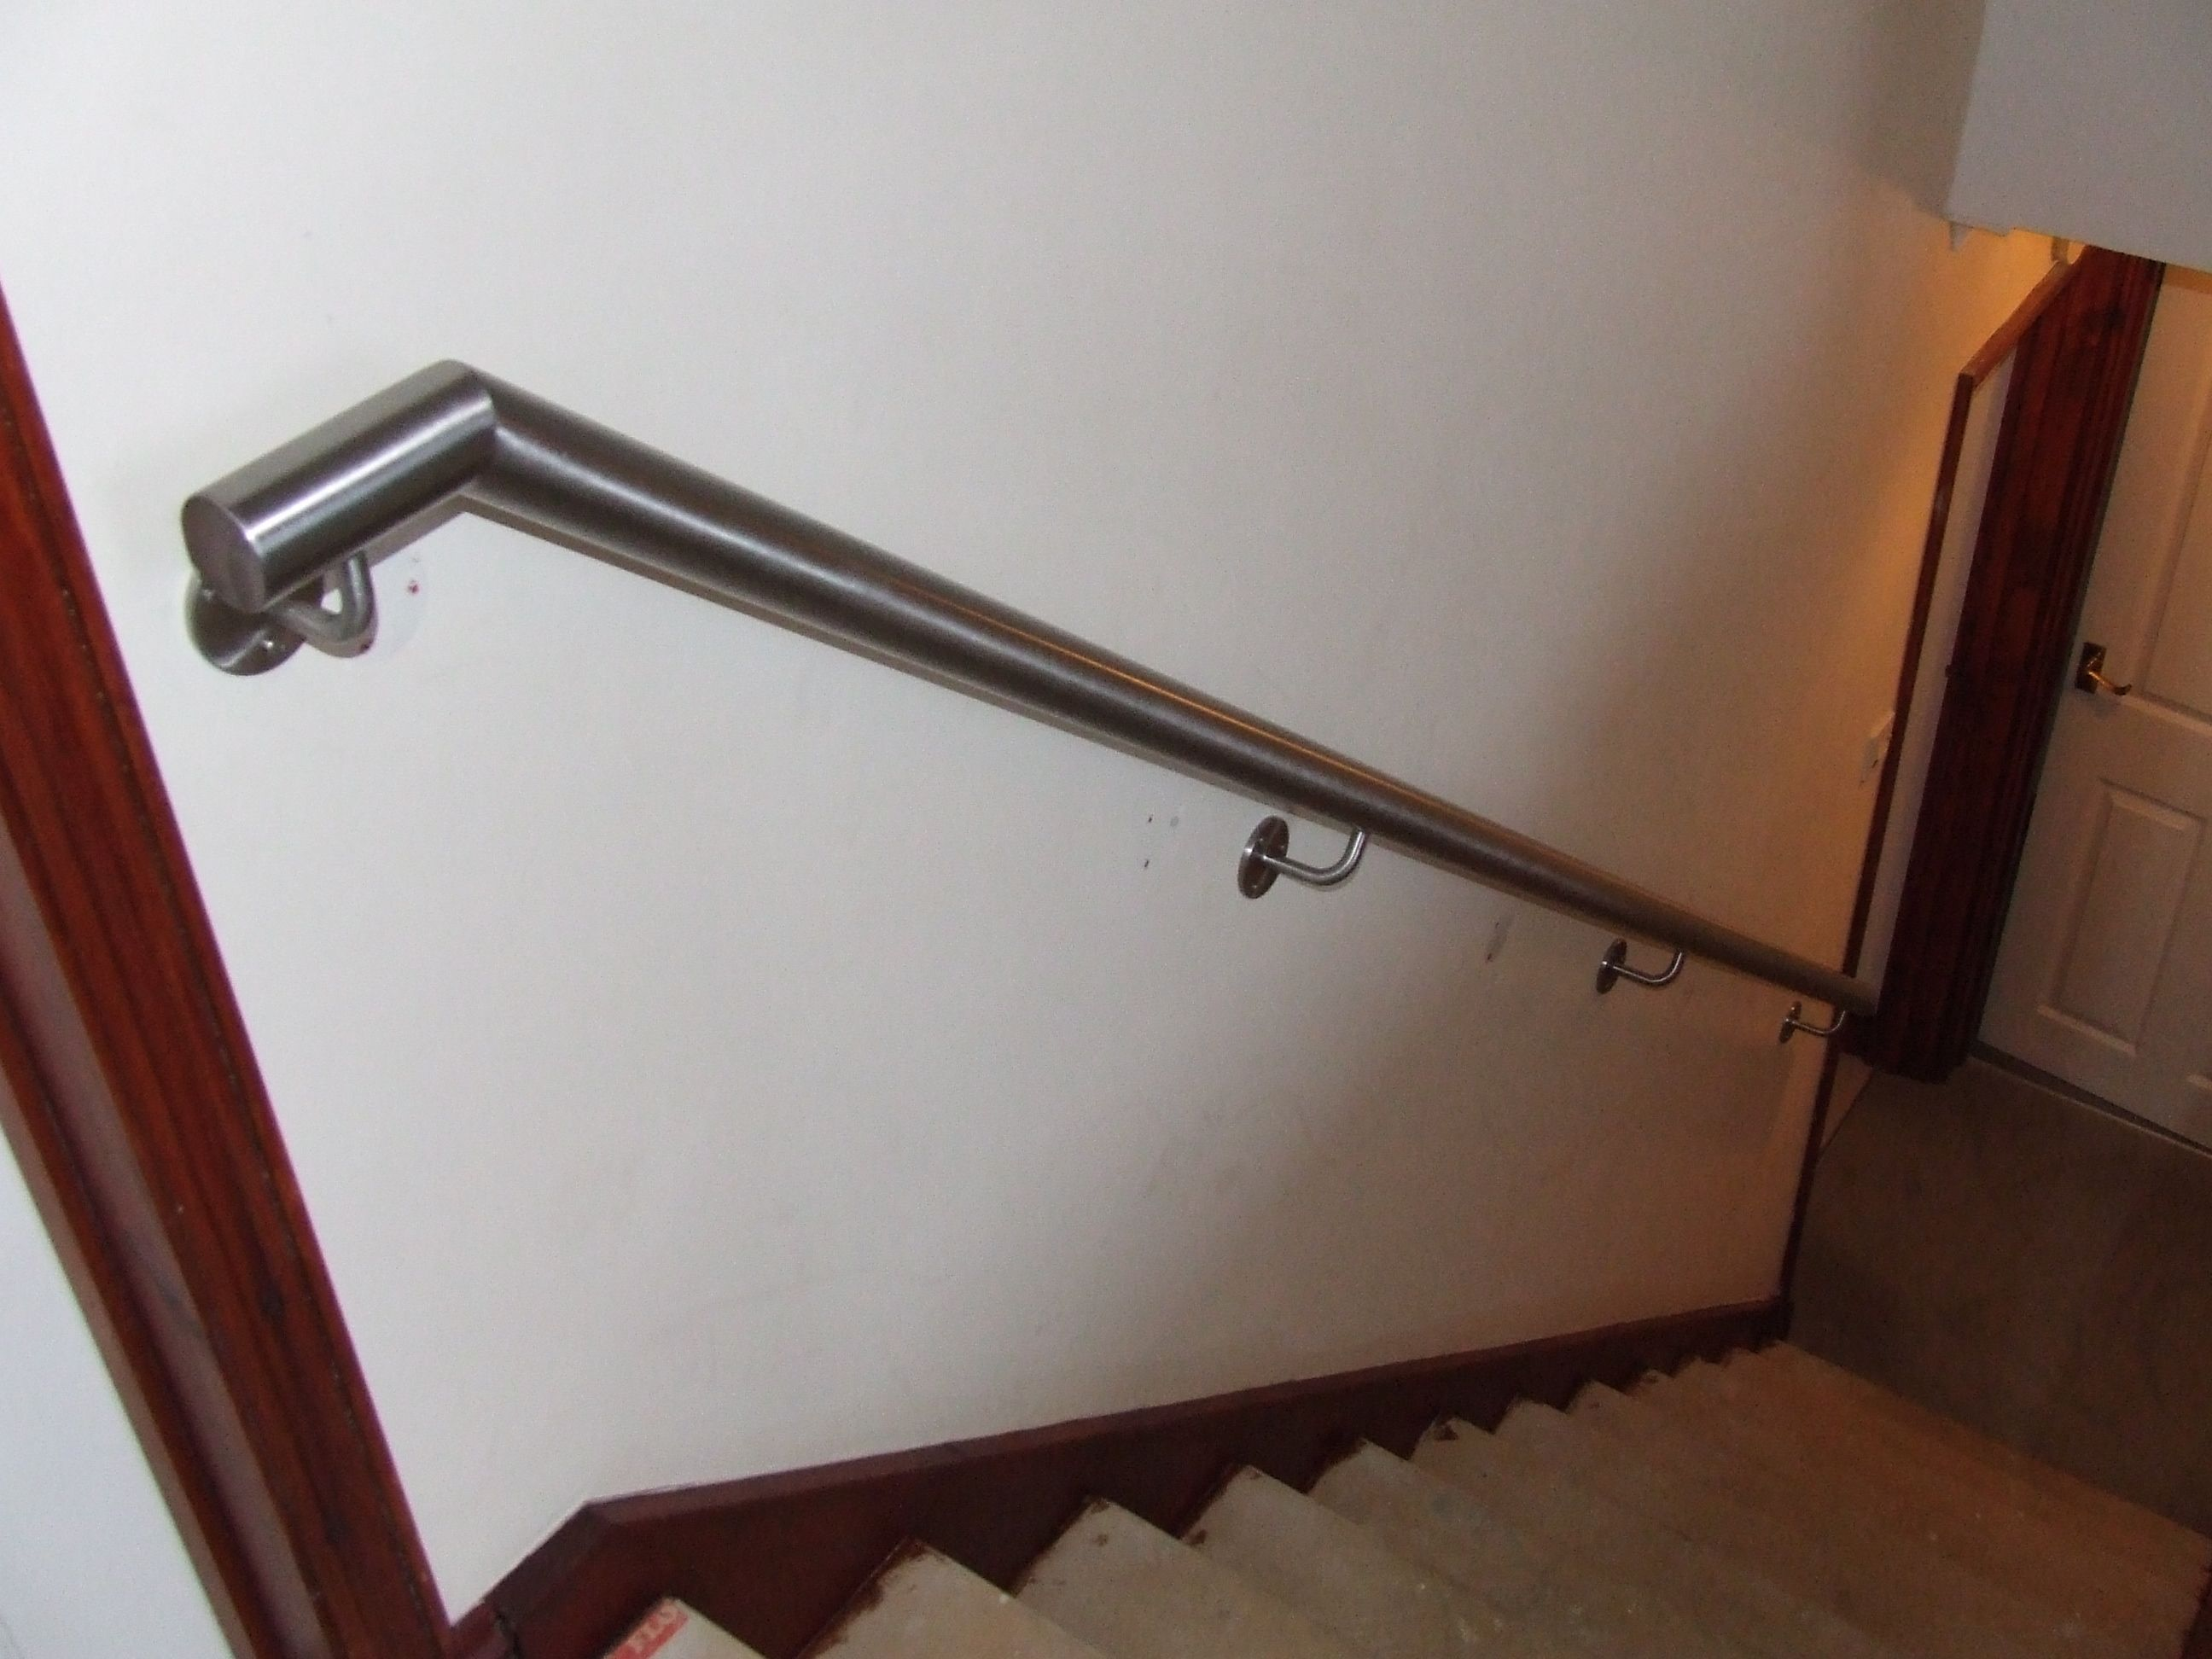 Best Internal Stair Handrail St Austel Reardon Handrails 400 x 300